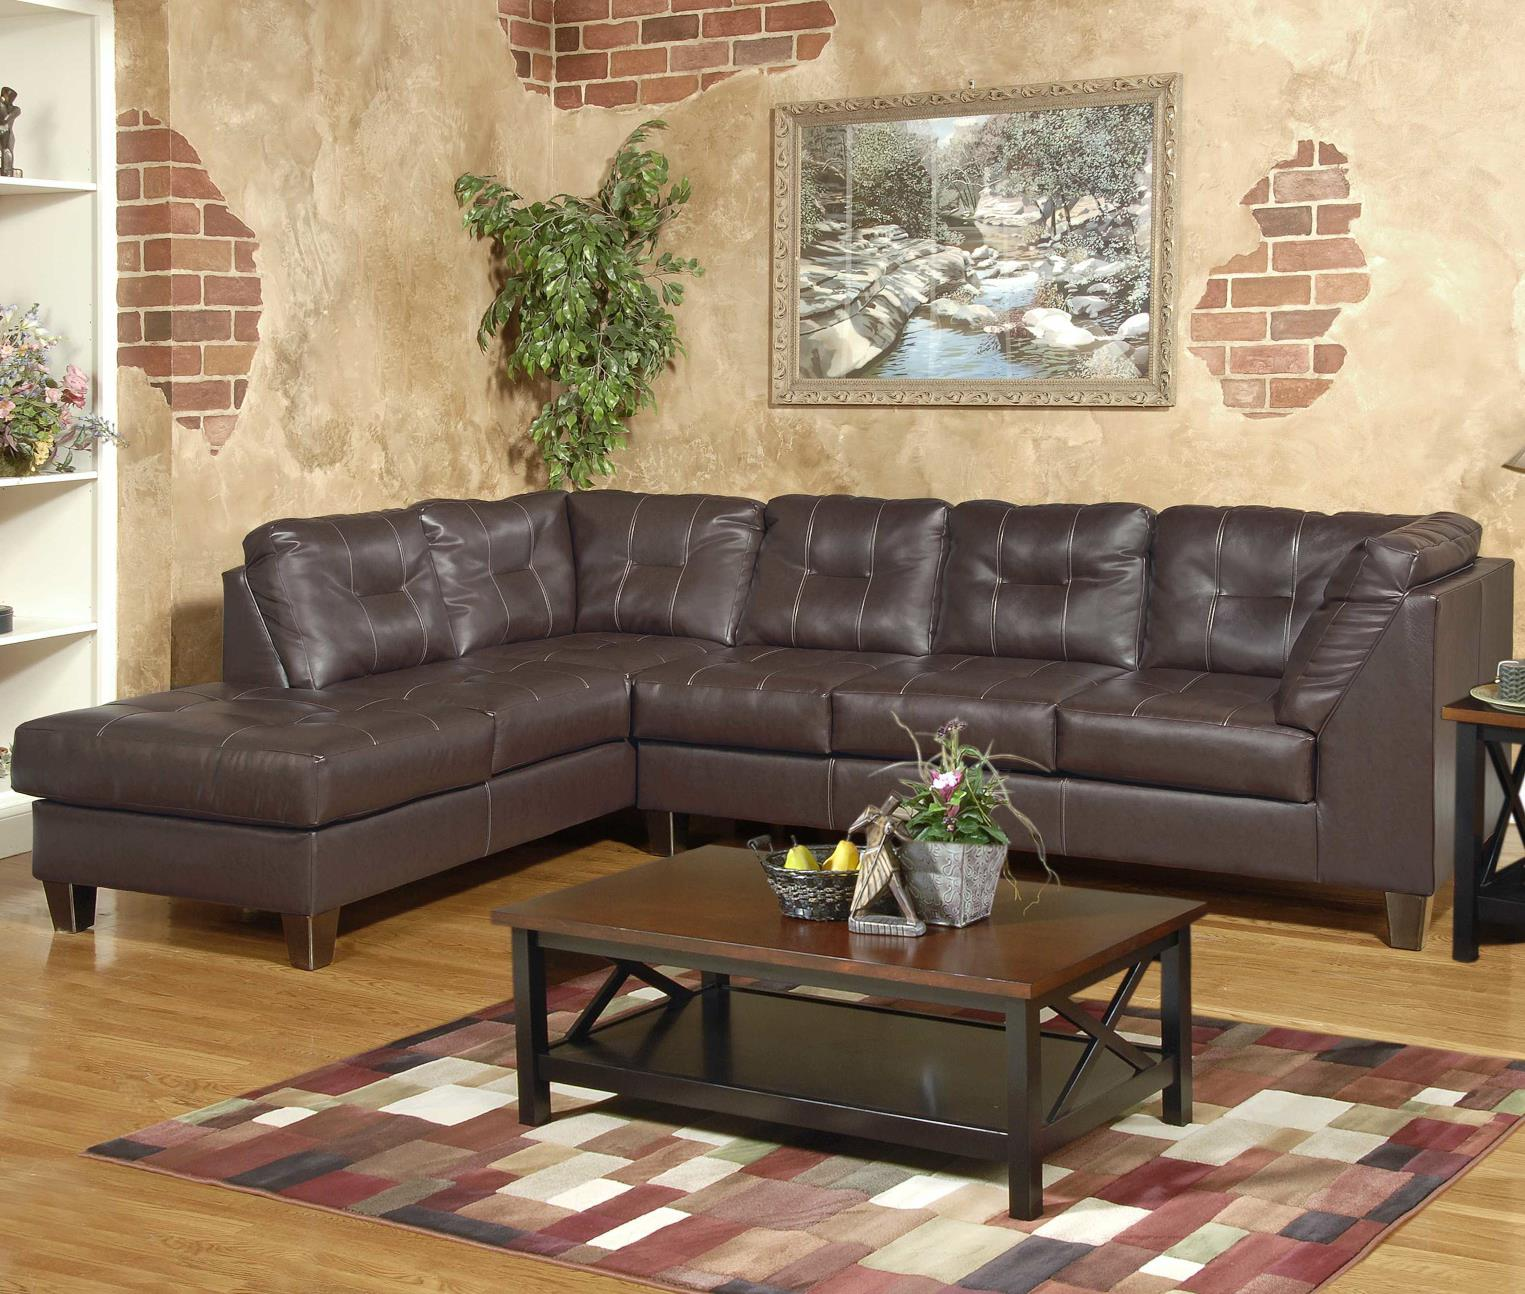 2500 Serta Sectional with LAF Chaise by Serta Upholstery by Hughes Furniture at Rooms for Less